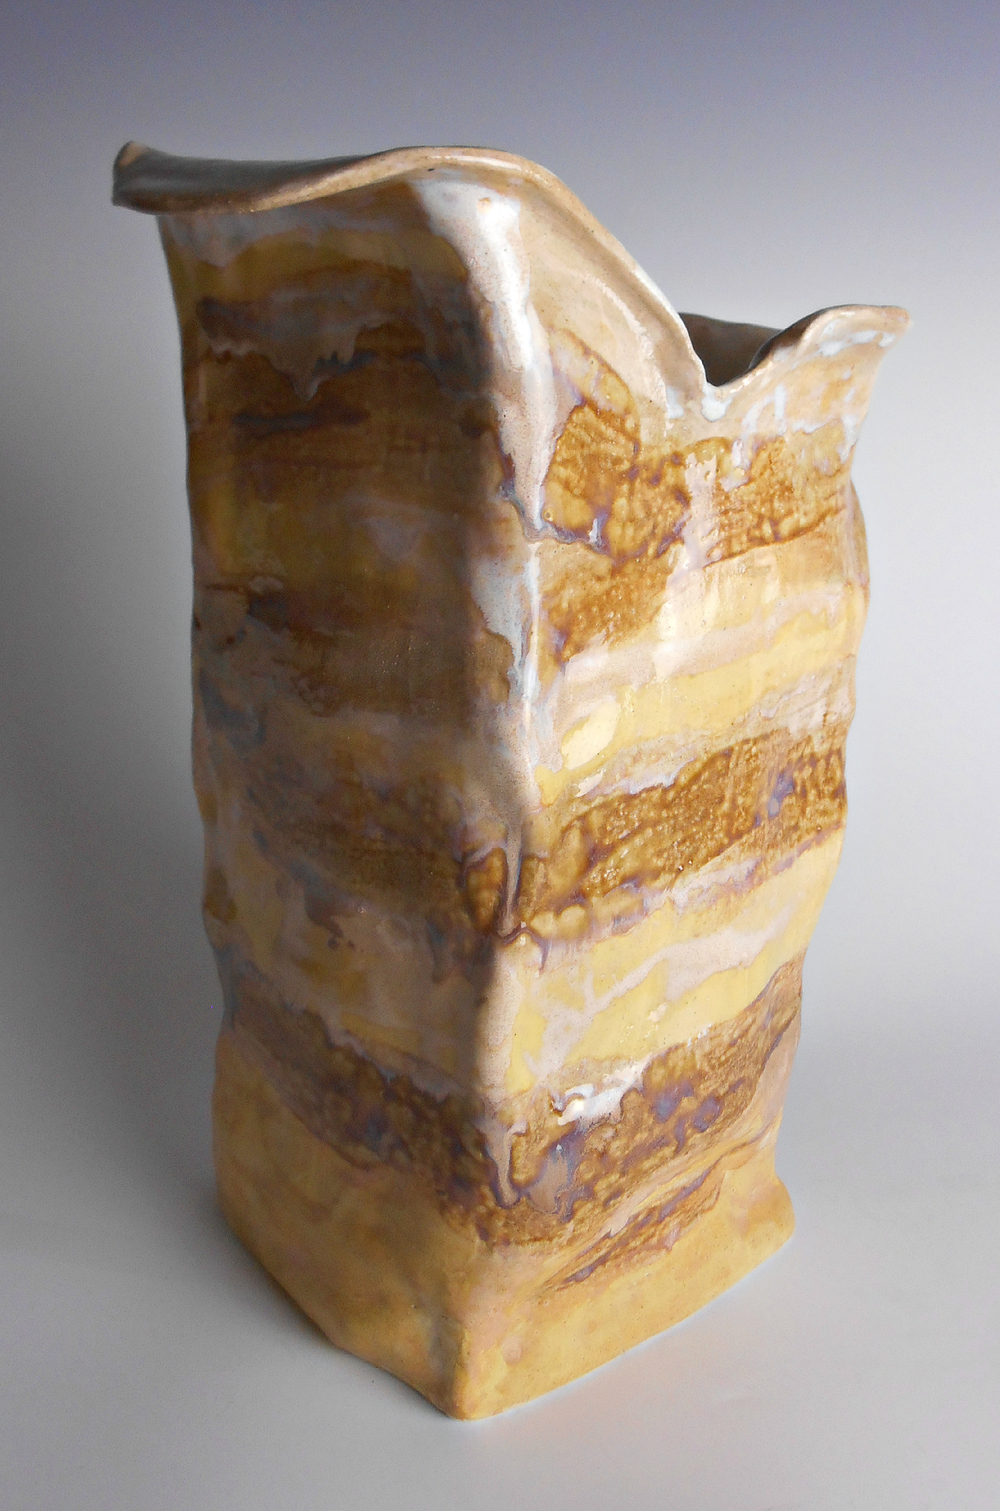 Modern Rustic Ceramic Sculpture Vase by Maggie Minor Designs